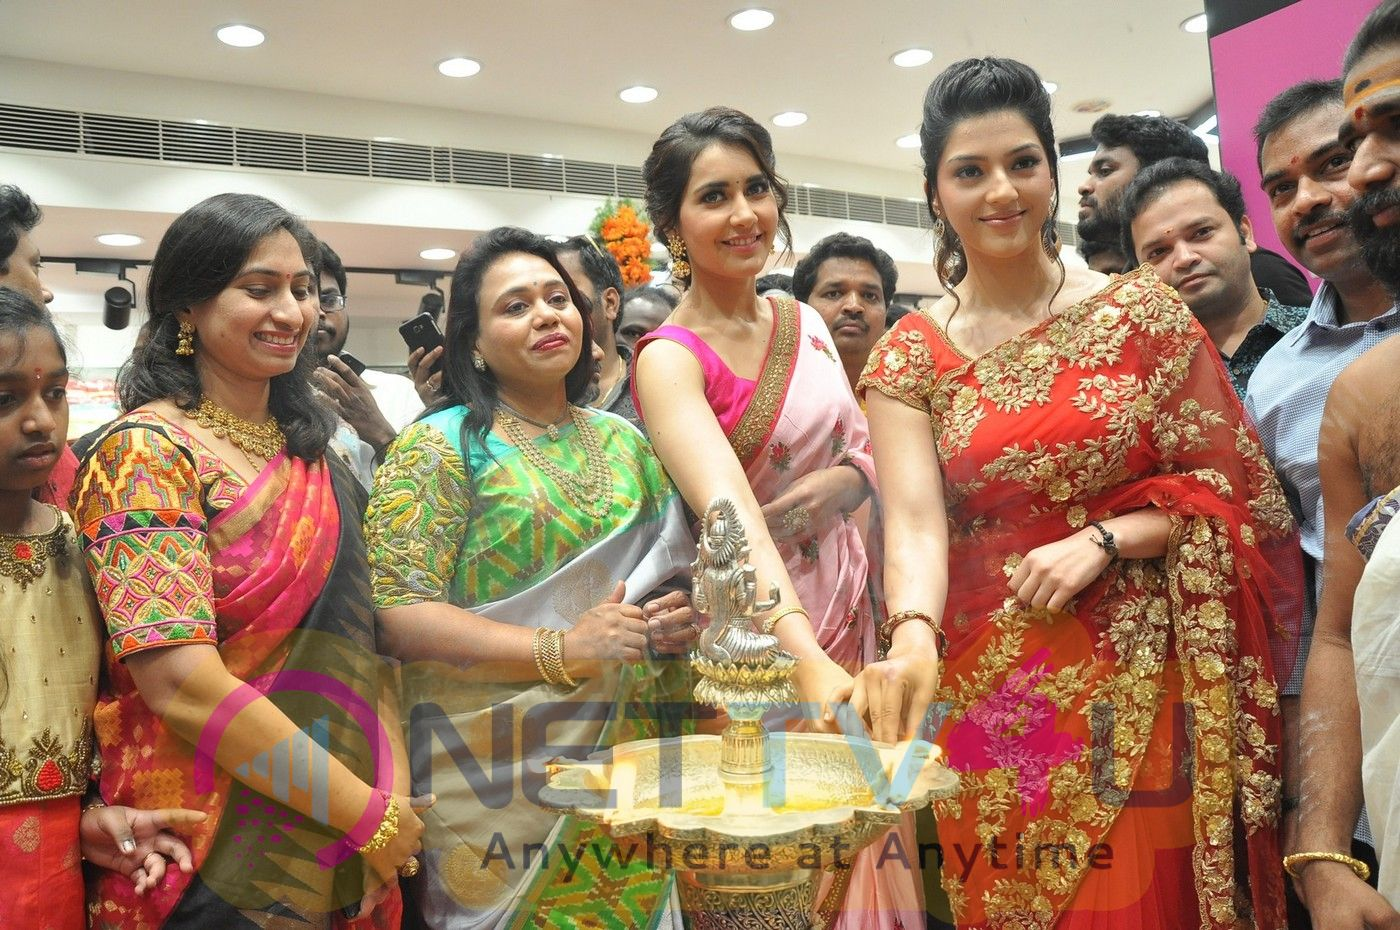 Actress Raashi Khanna & Mehrene Kaur Pirzada Launches KLM Fashion Mall At Nellore Stills